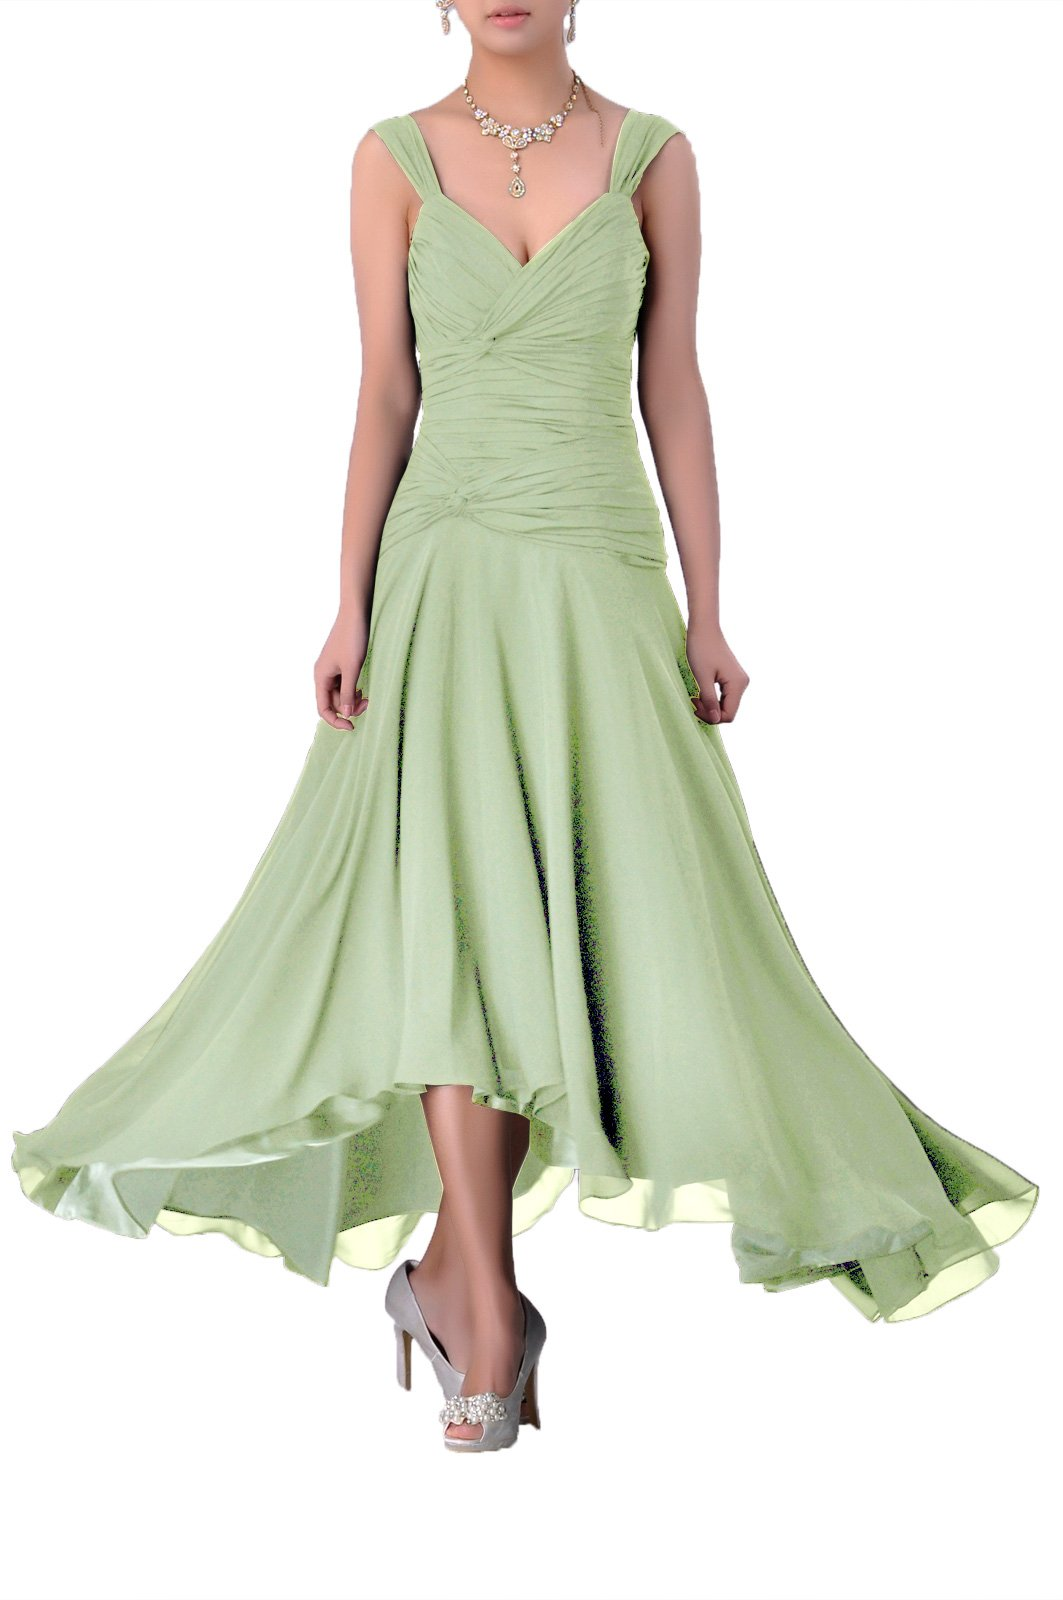 1db3c429674d1 Mother of The Bride Groom Dress Tea Length Formal Chiffon Special Occasion  Bridesmaid, Color Sage,22W